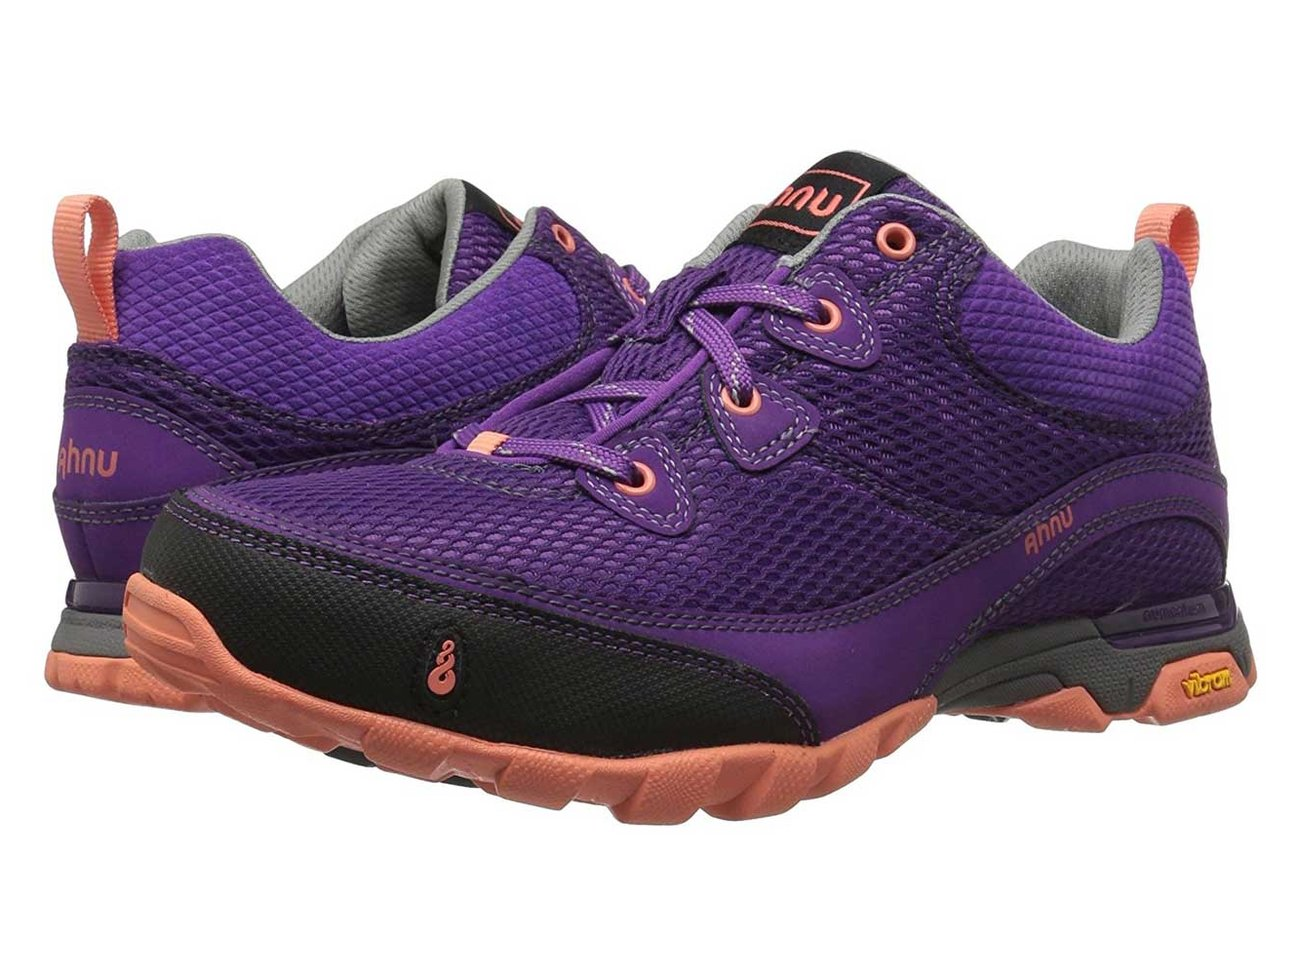 ae0214a69b84 Best for Trail-to-Town Transitions  Ahnu Women s Sugarpine Air Mesh